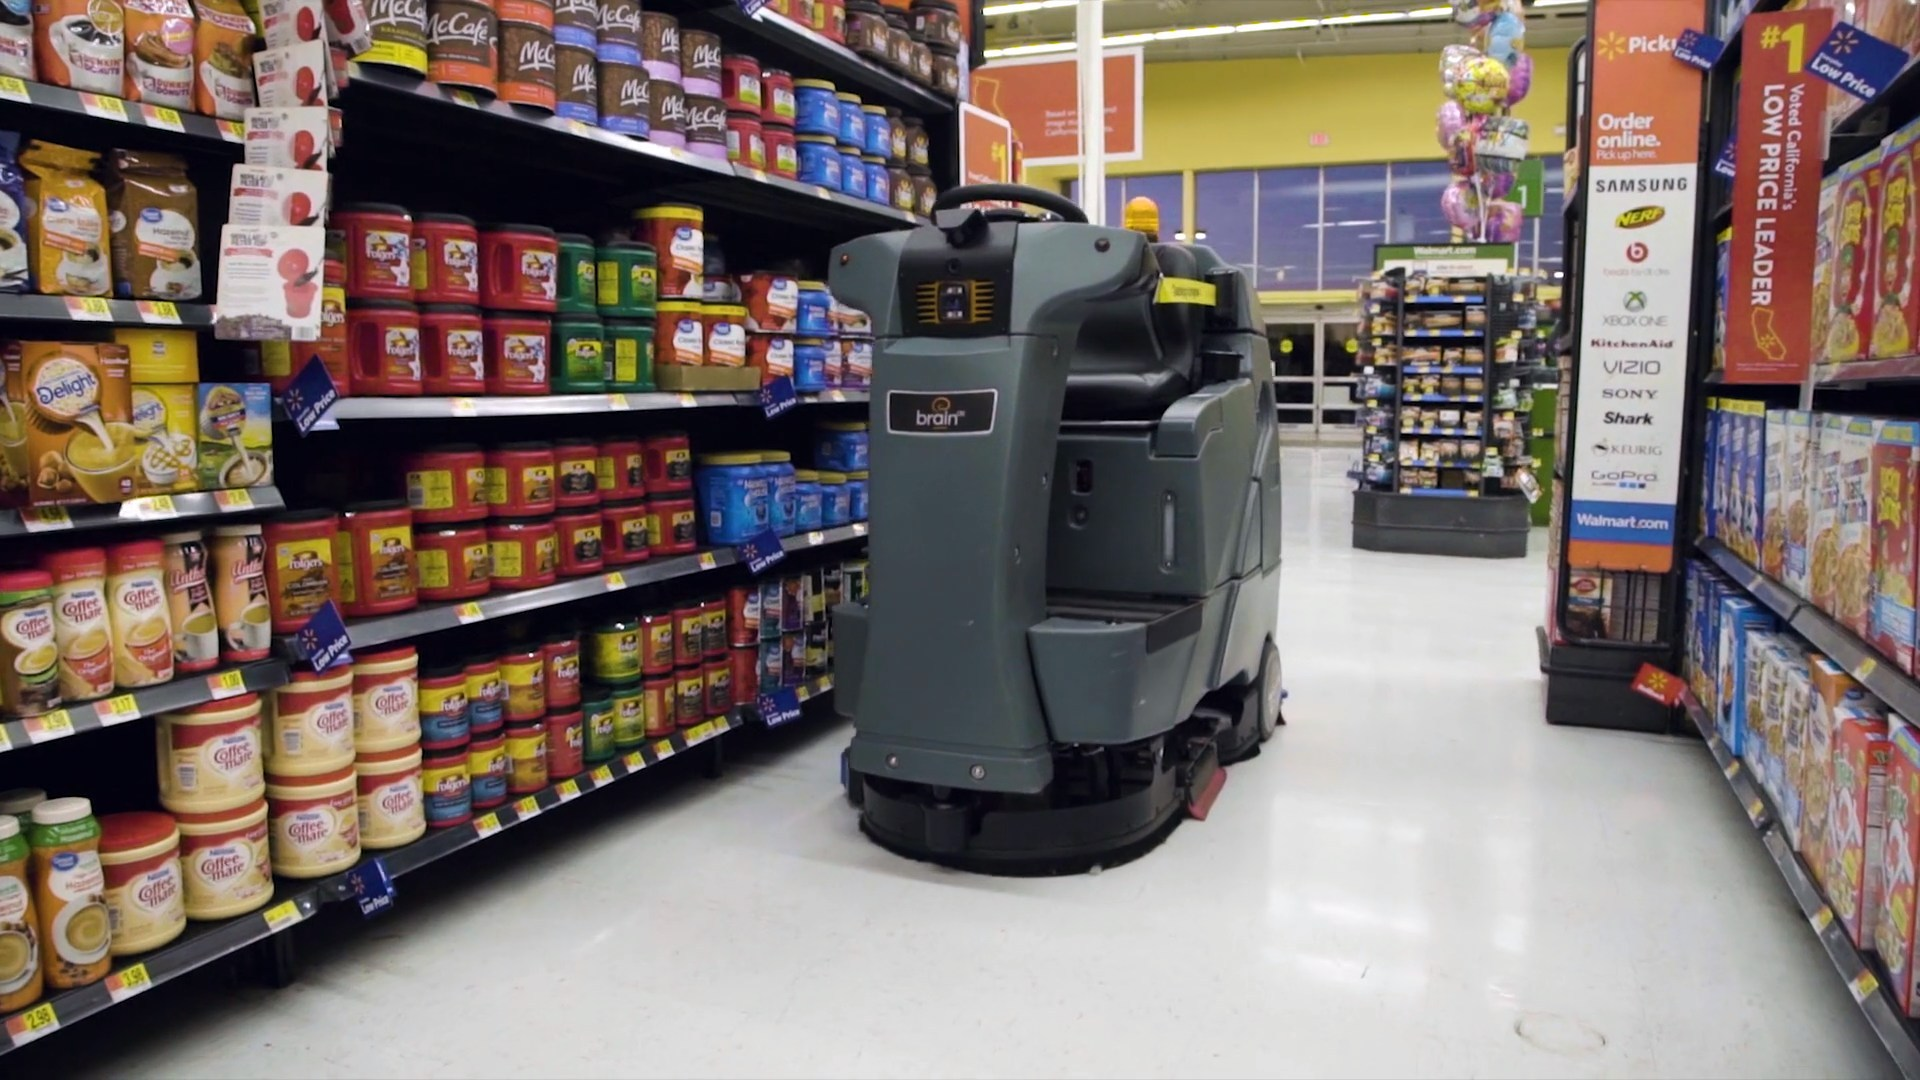 Walmart S Latest Hire Robotic Janitors That Clean Floors And